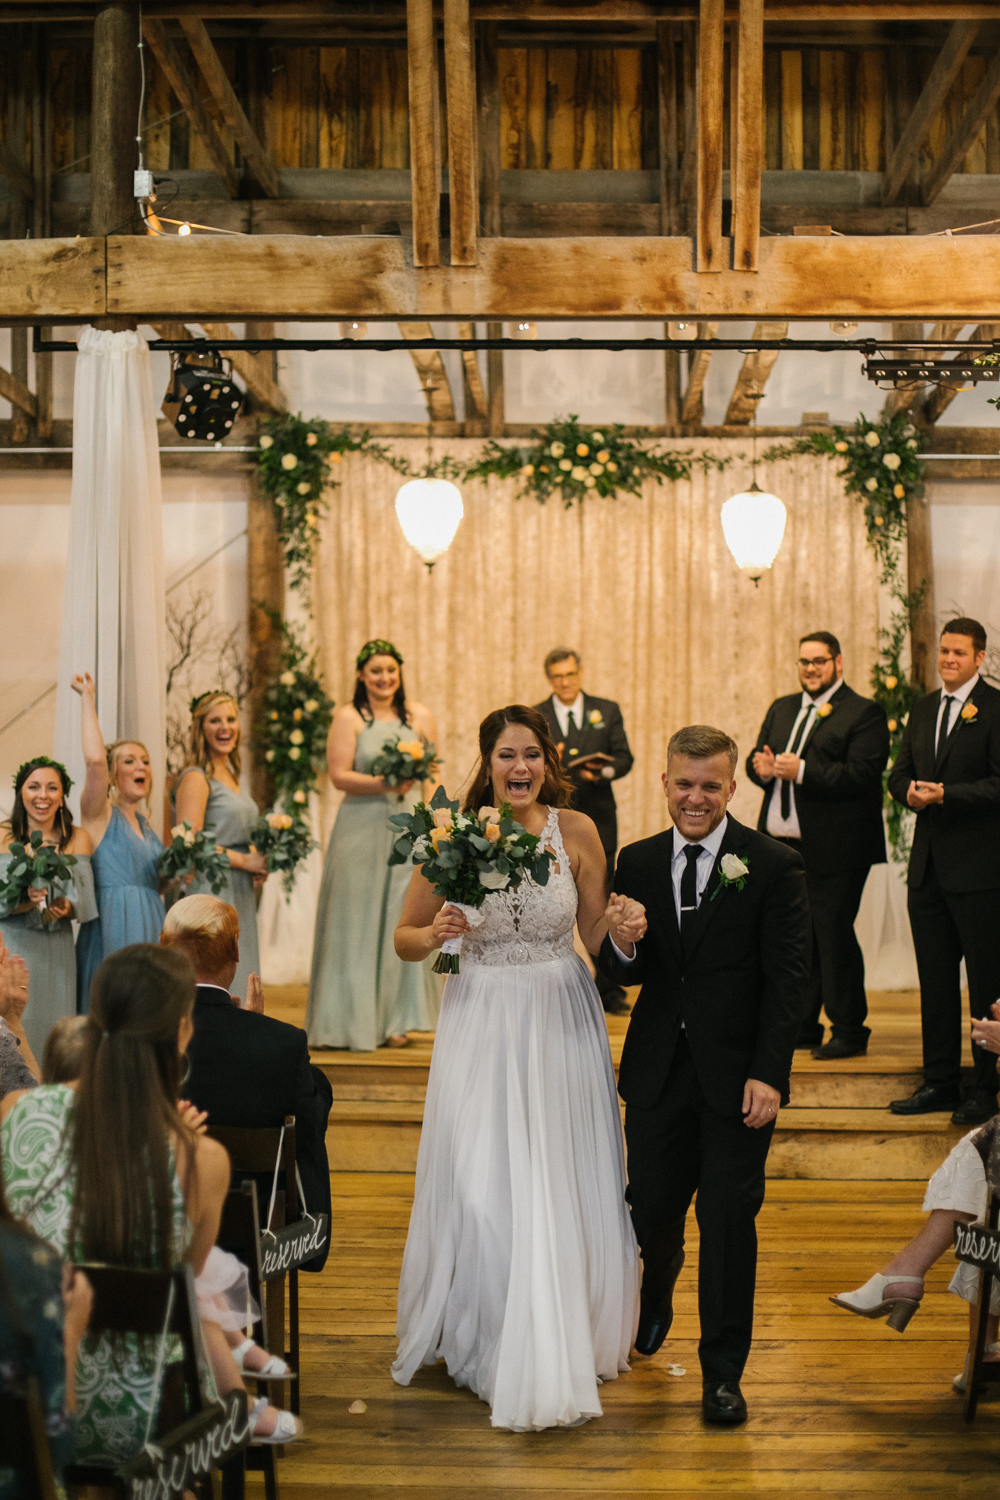 2018.05.05_SarahDillon_Wedding_Starks-0036.jpg